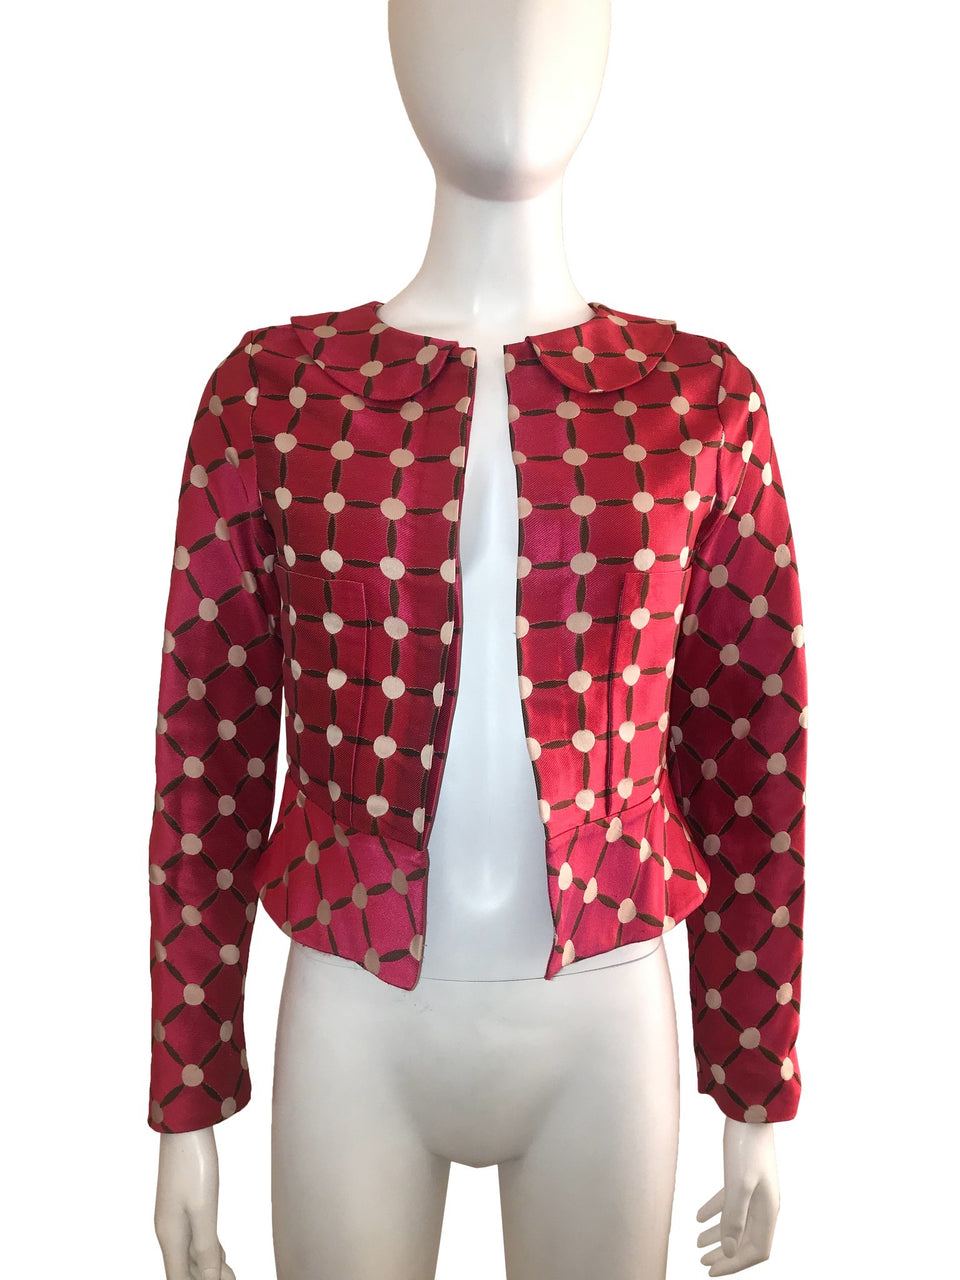 Printed Jacket with Dotted Pattern